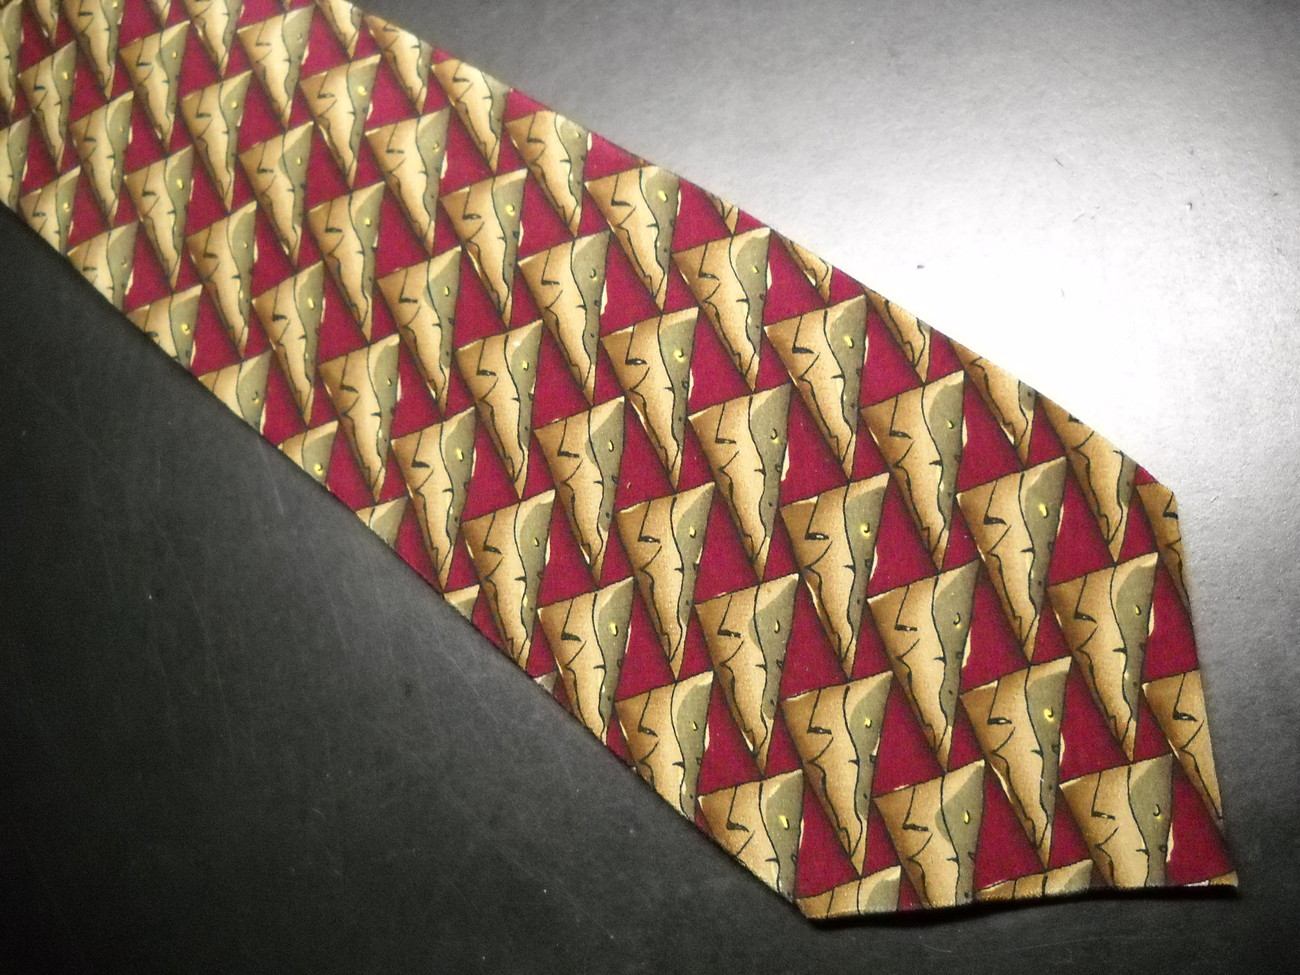 J Garcia Neck Tie Collection 15 Zoot Subdued Rusts Browns and Greens Silk Jerry Garcia